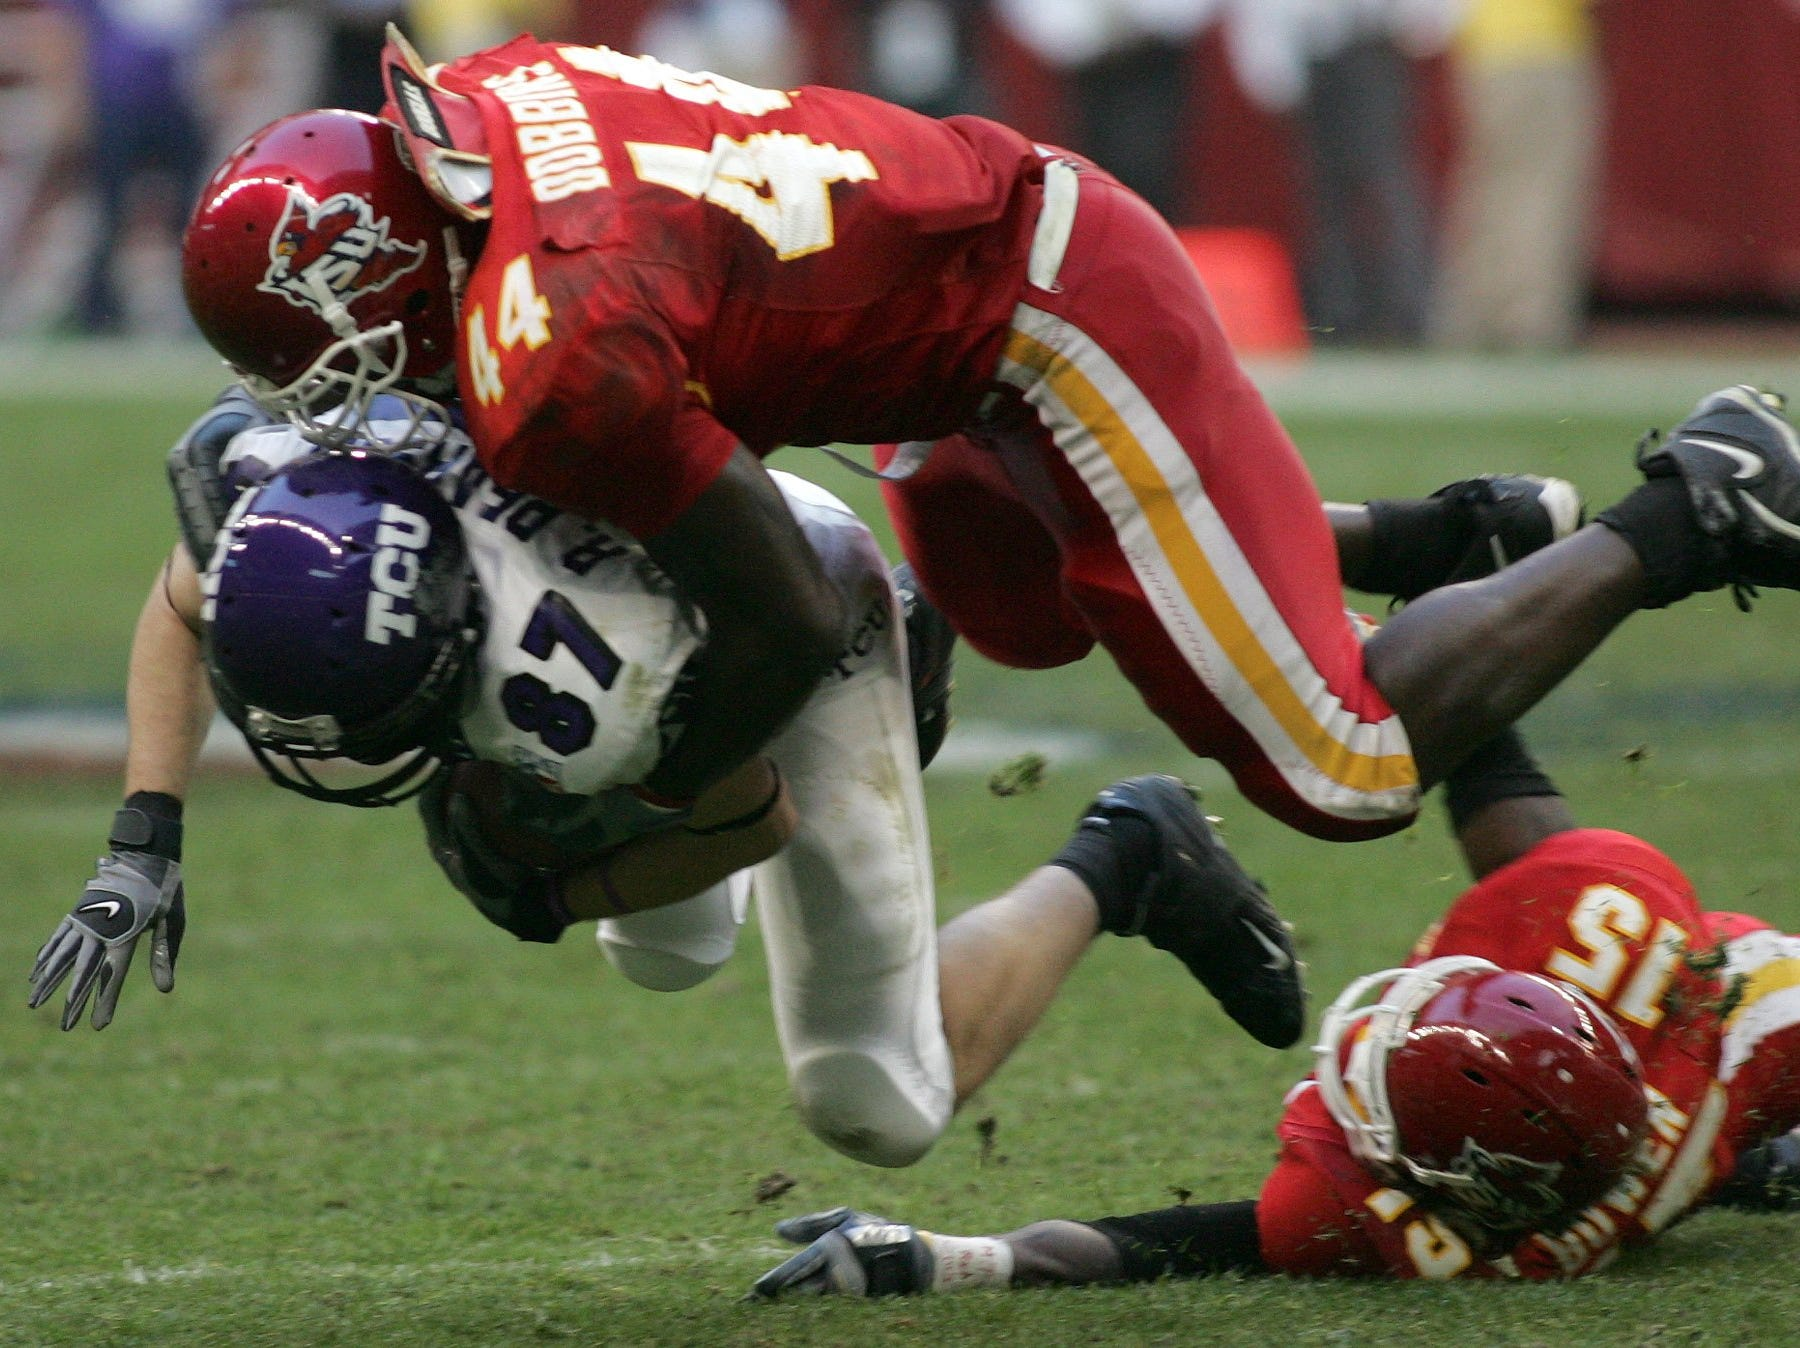 Iowa State's Tim Dobbins brings down Texas Christian receiver Ryan Pearson after a 14-yard gain during the 2005 Houston Bowl.